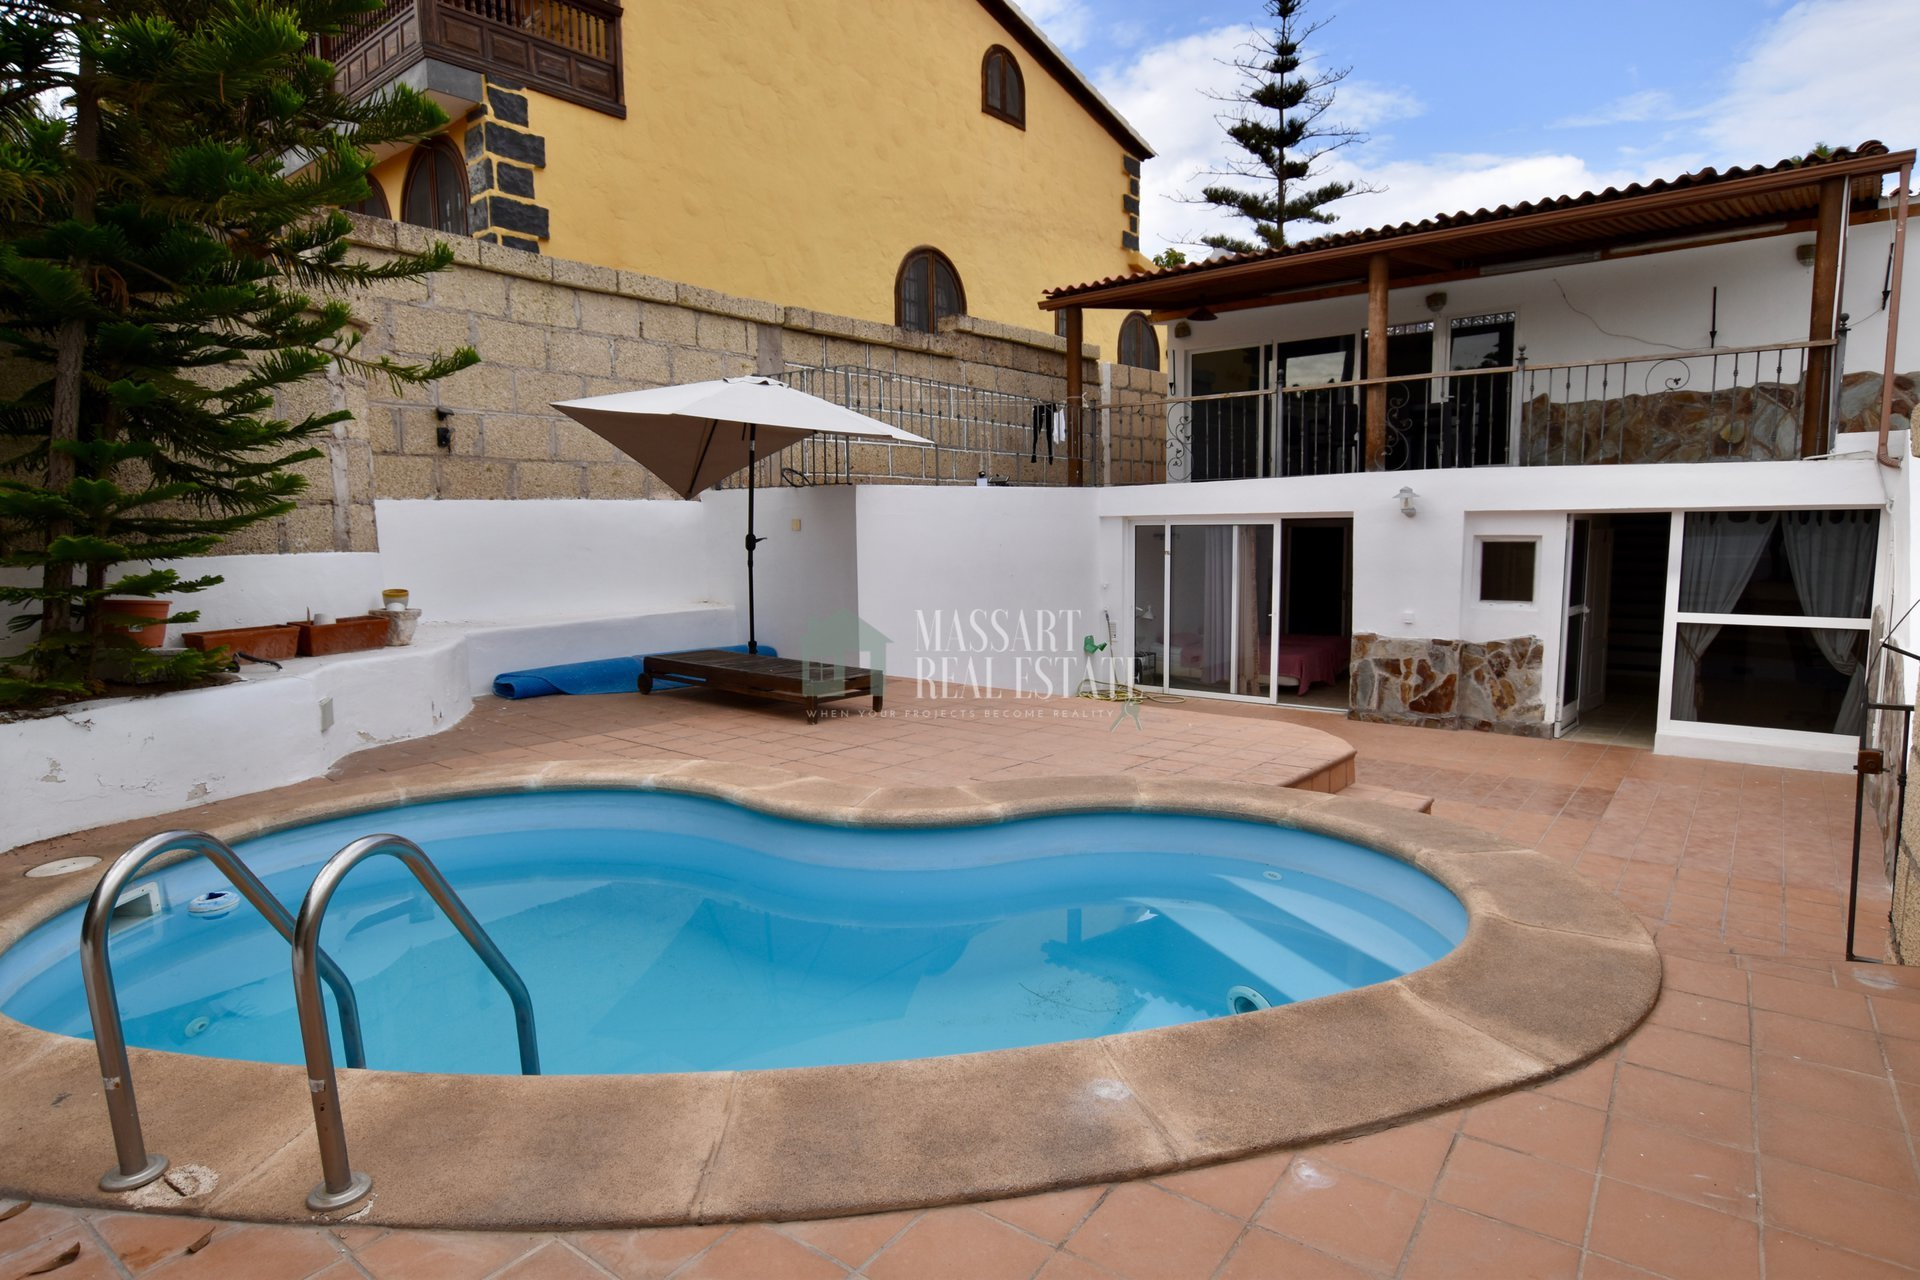 For rent / sale in Chayofa, beautiful villa of 260m2 distributed on two floors and located in a street where tranquility reigns.